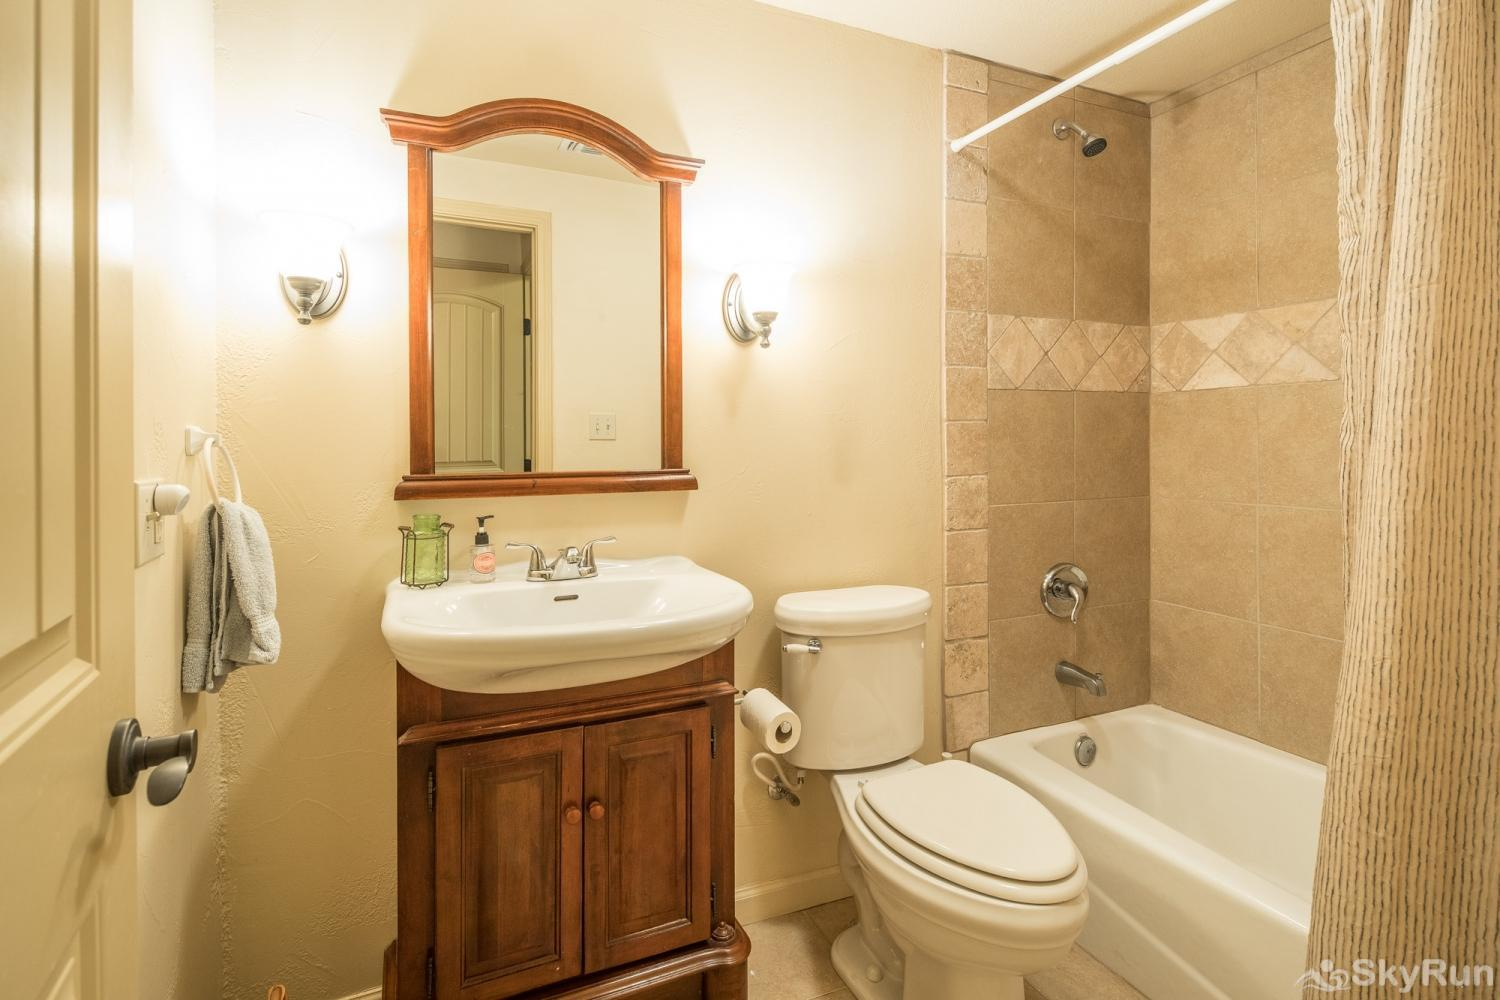 LITTLE ROCK 'N' WOOD Second Full Bathroom